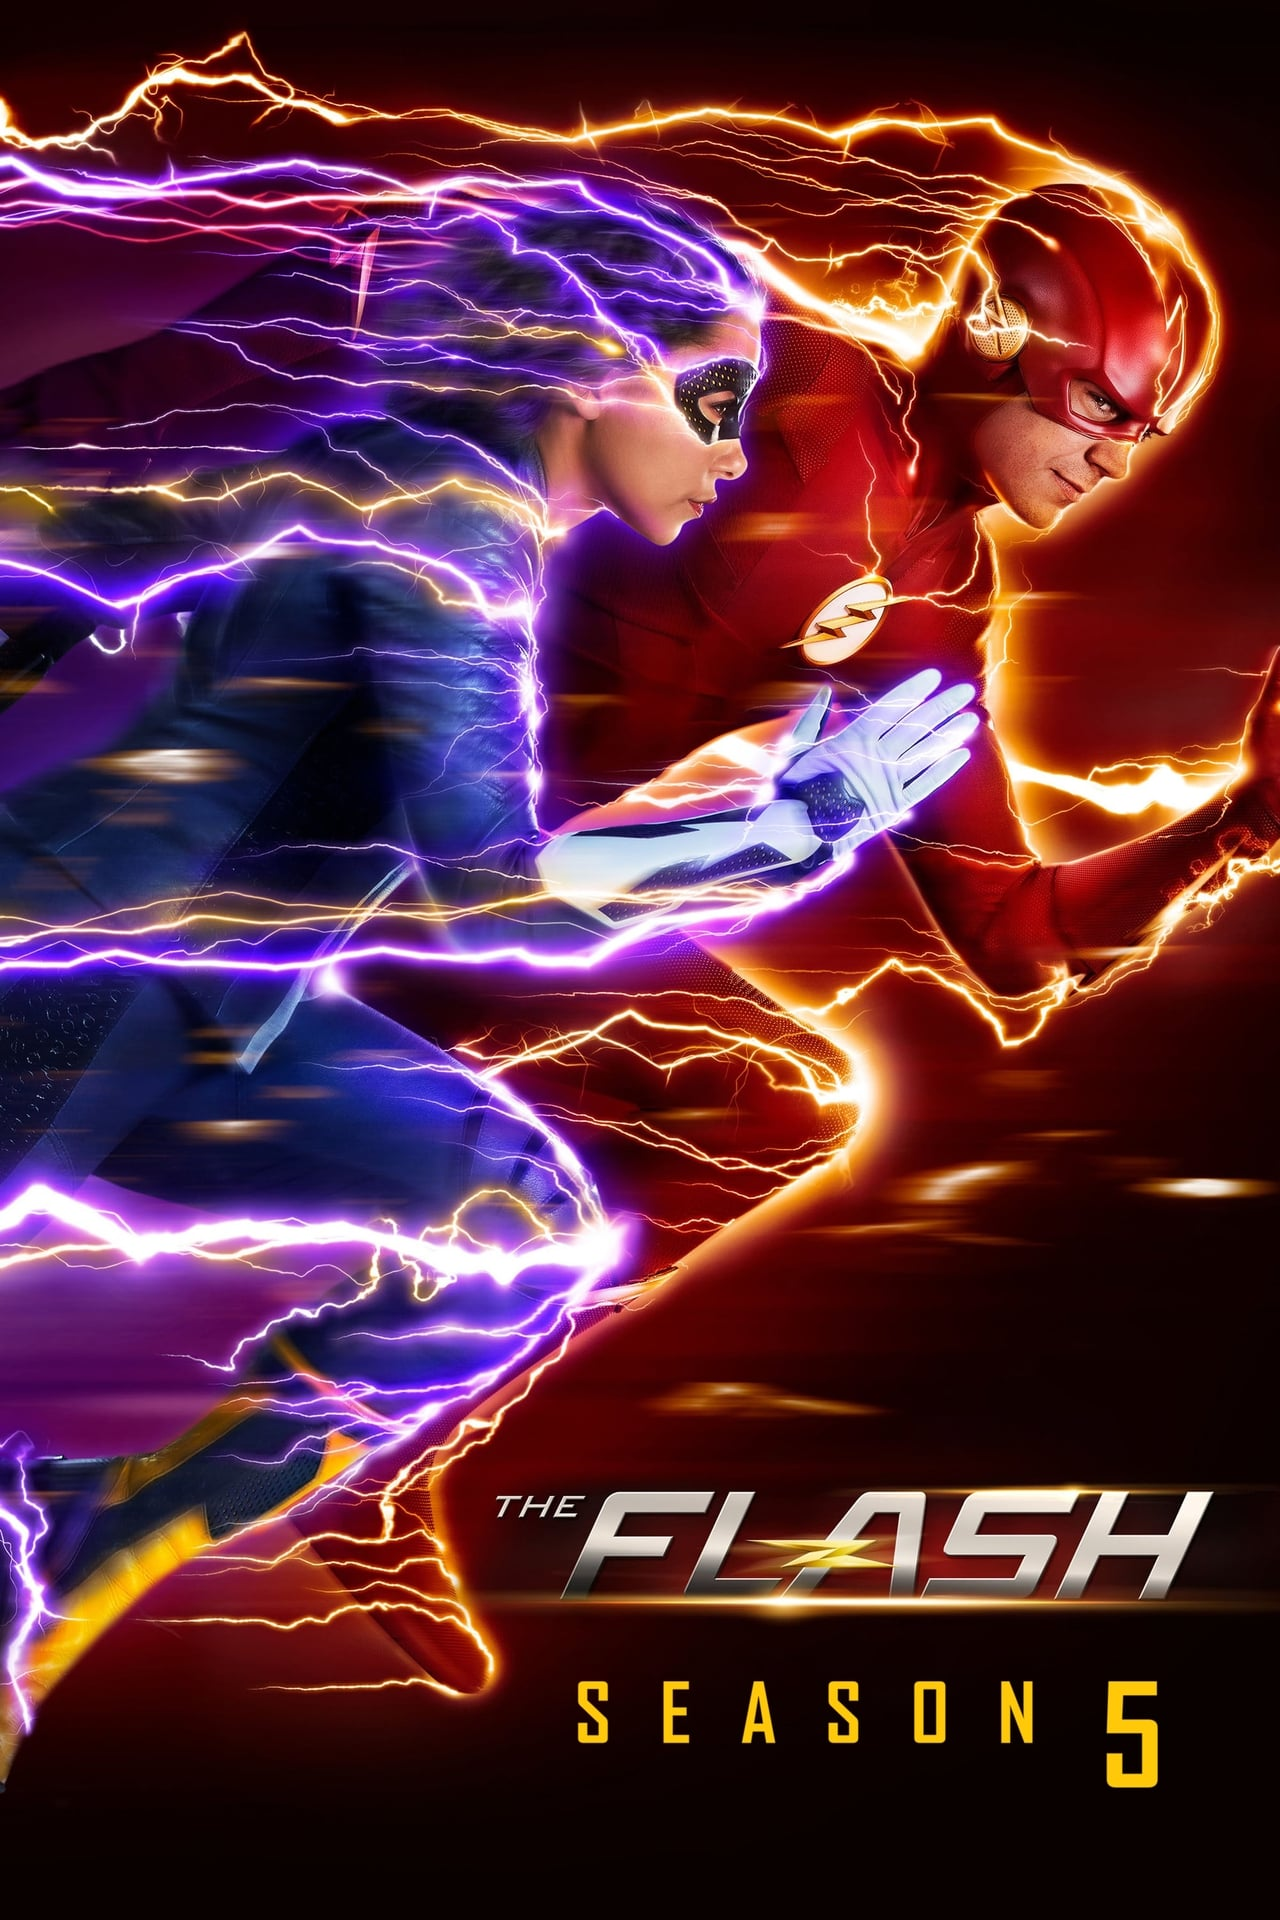 Watch The Flash Season 5 Online